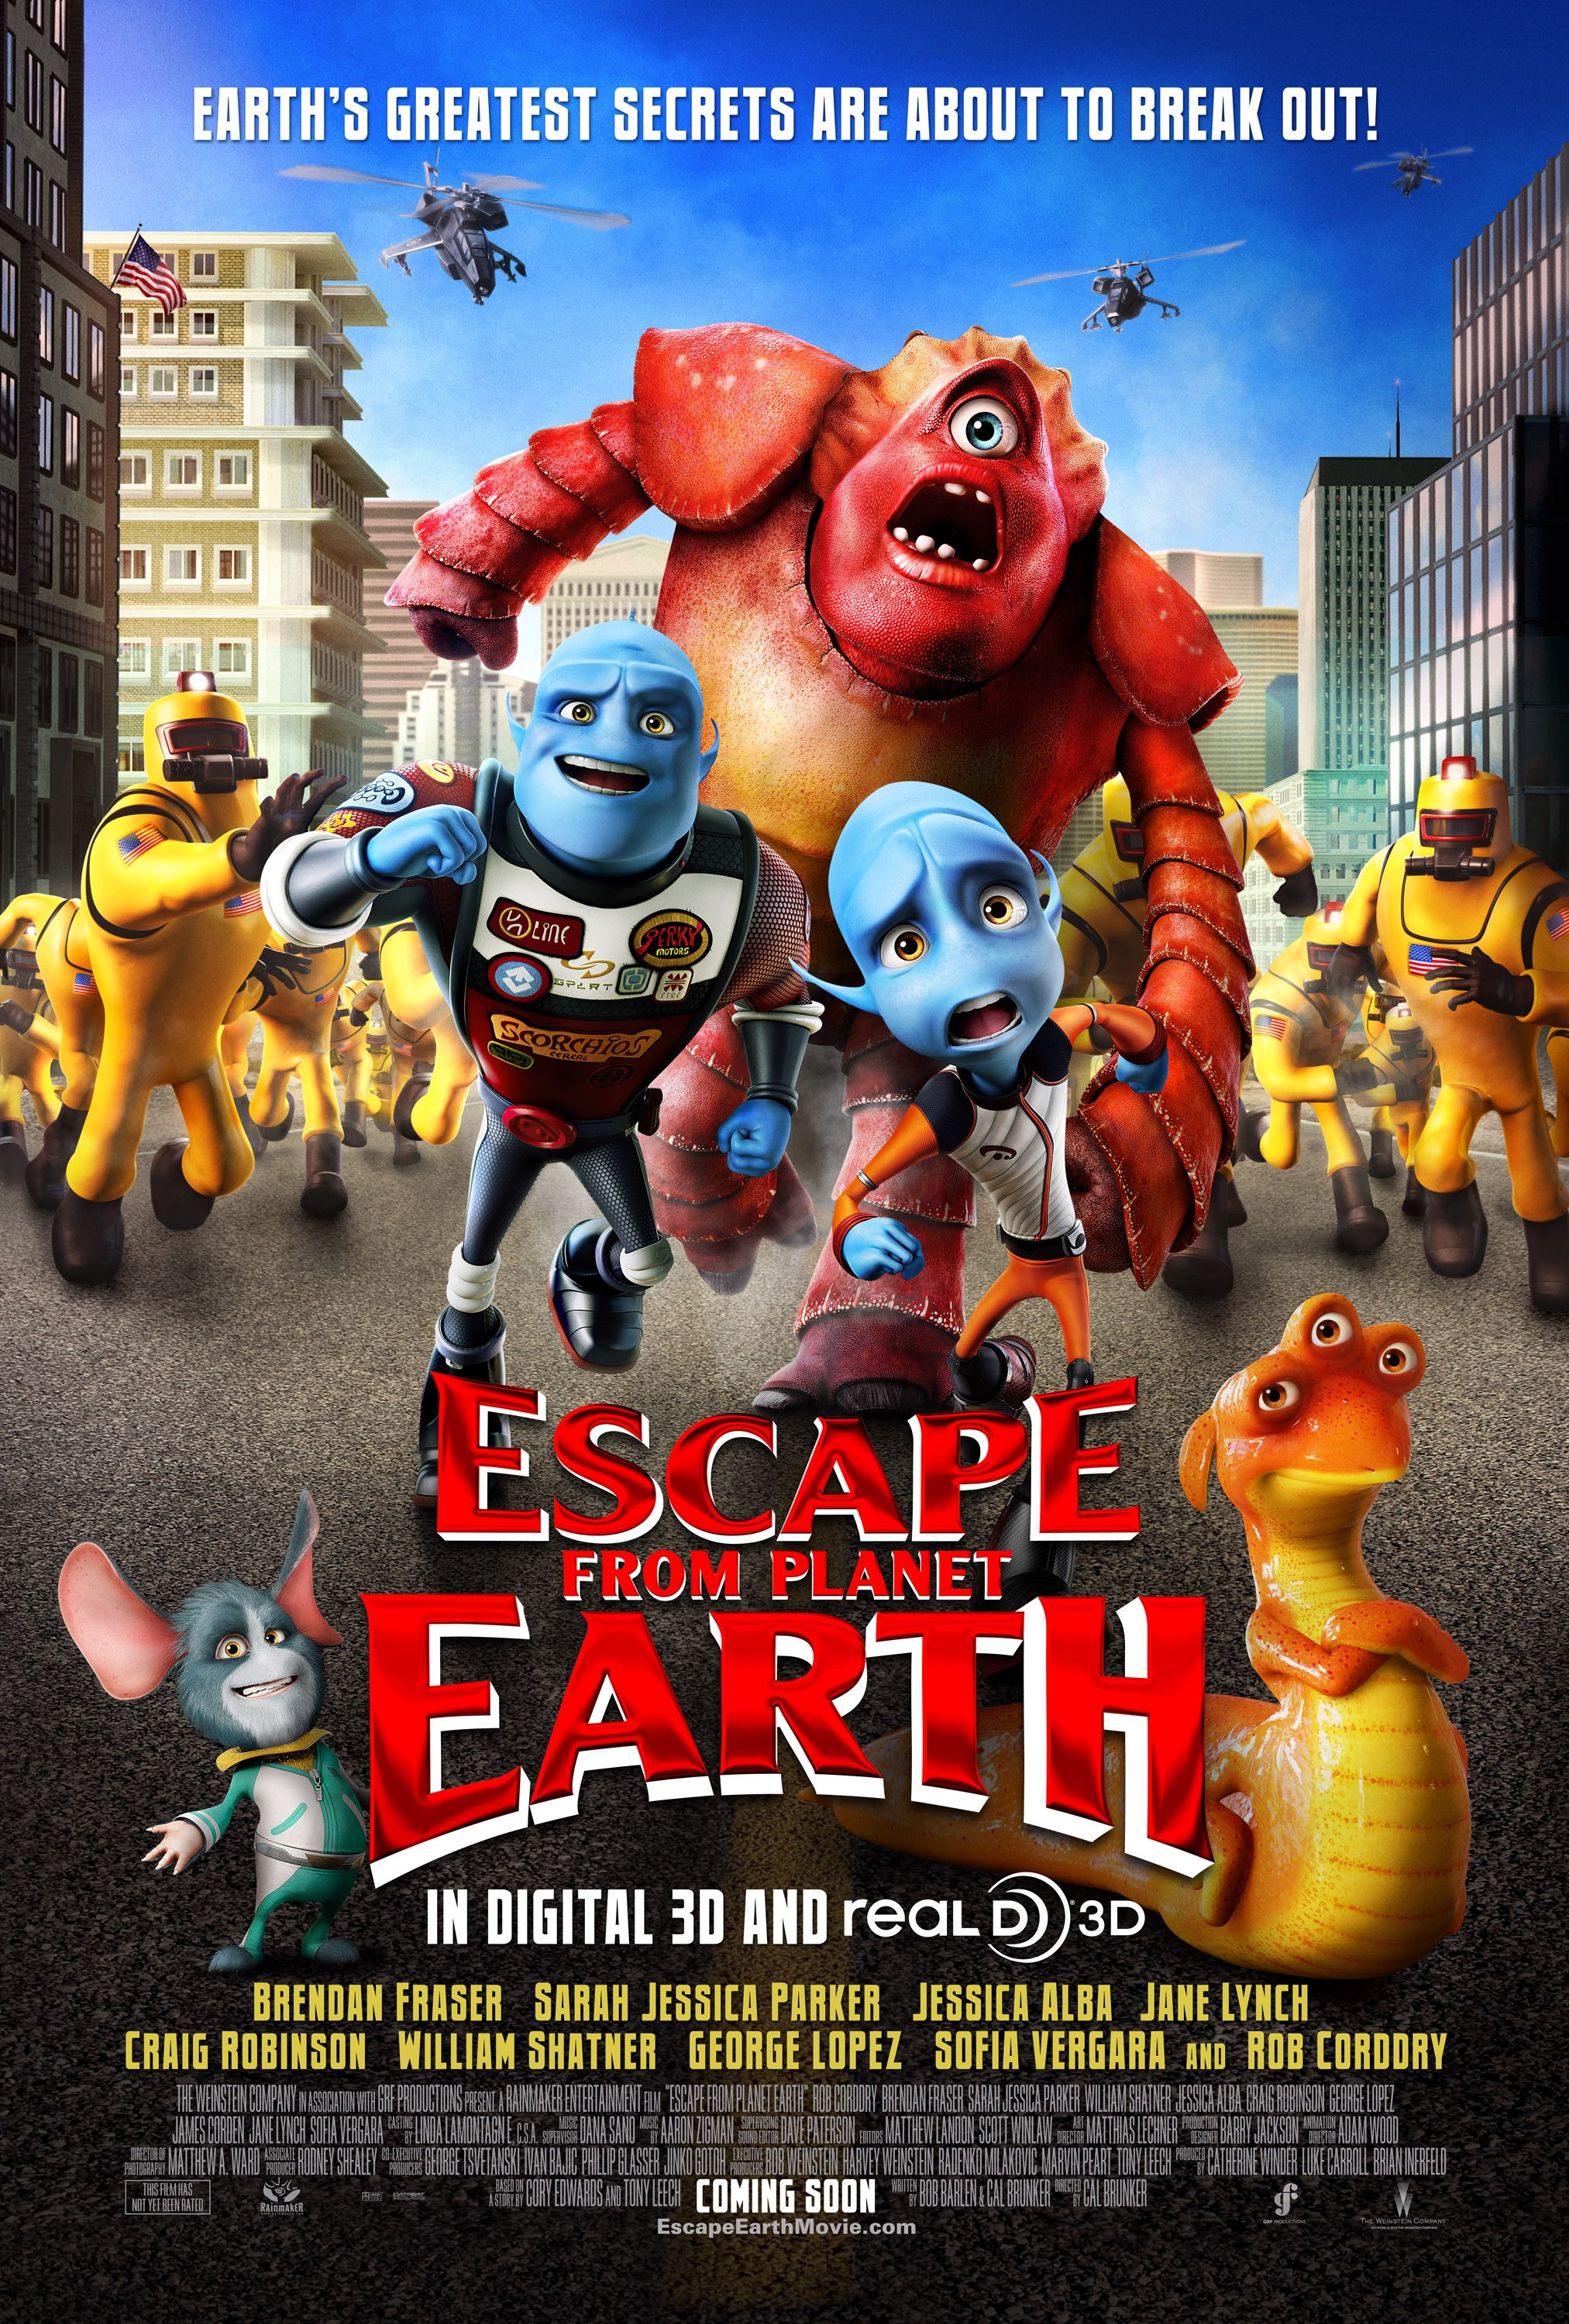 214 - Escape From Planet Earth